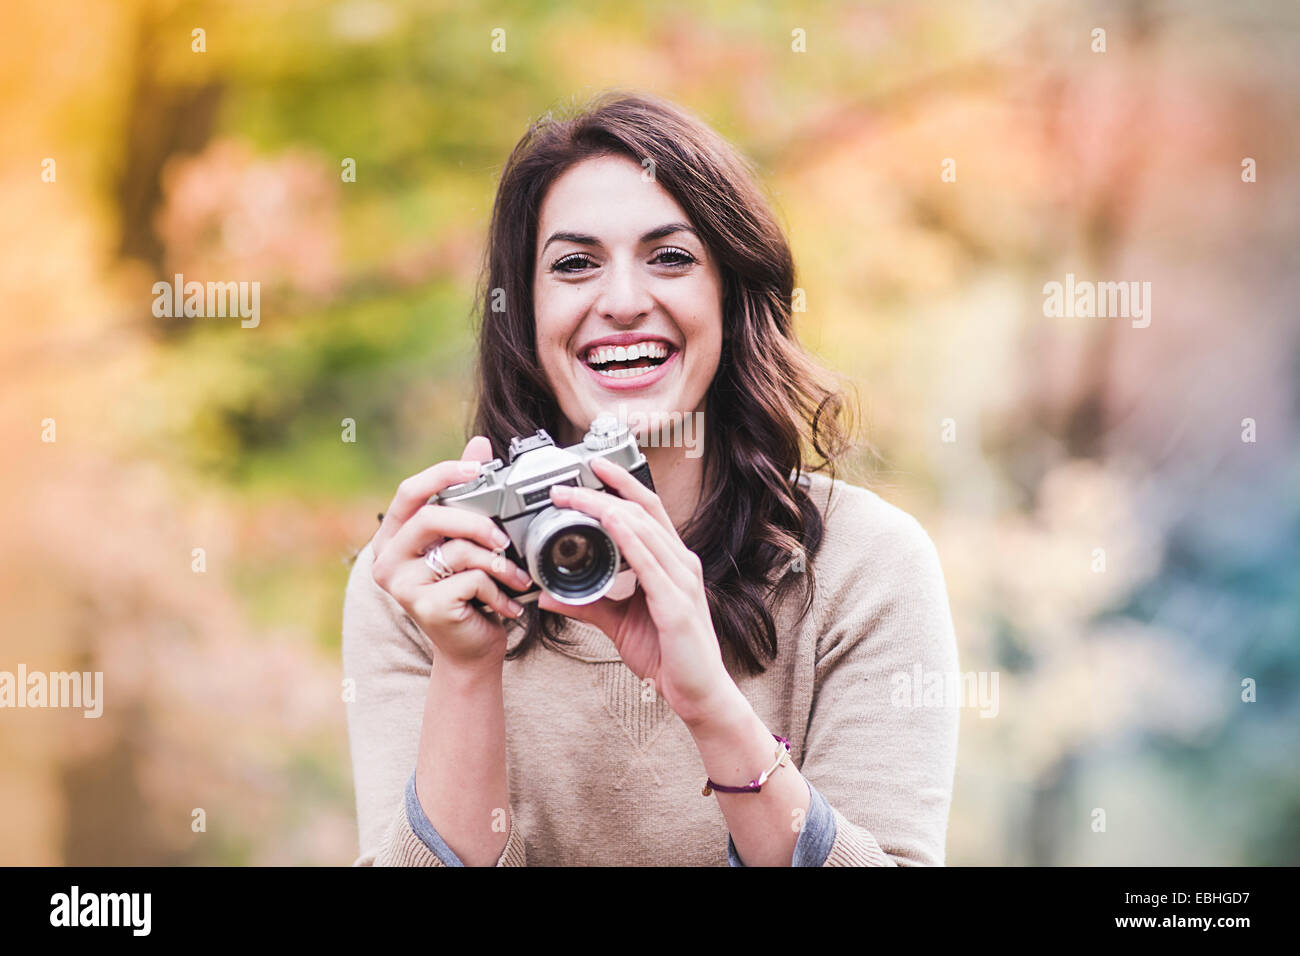 Portrait of smiling young woman using SLR camera in autumn forest - Stock Image